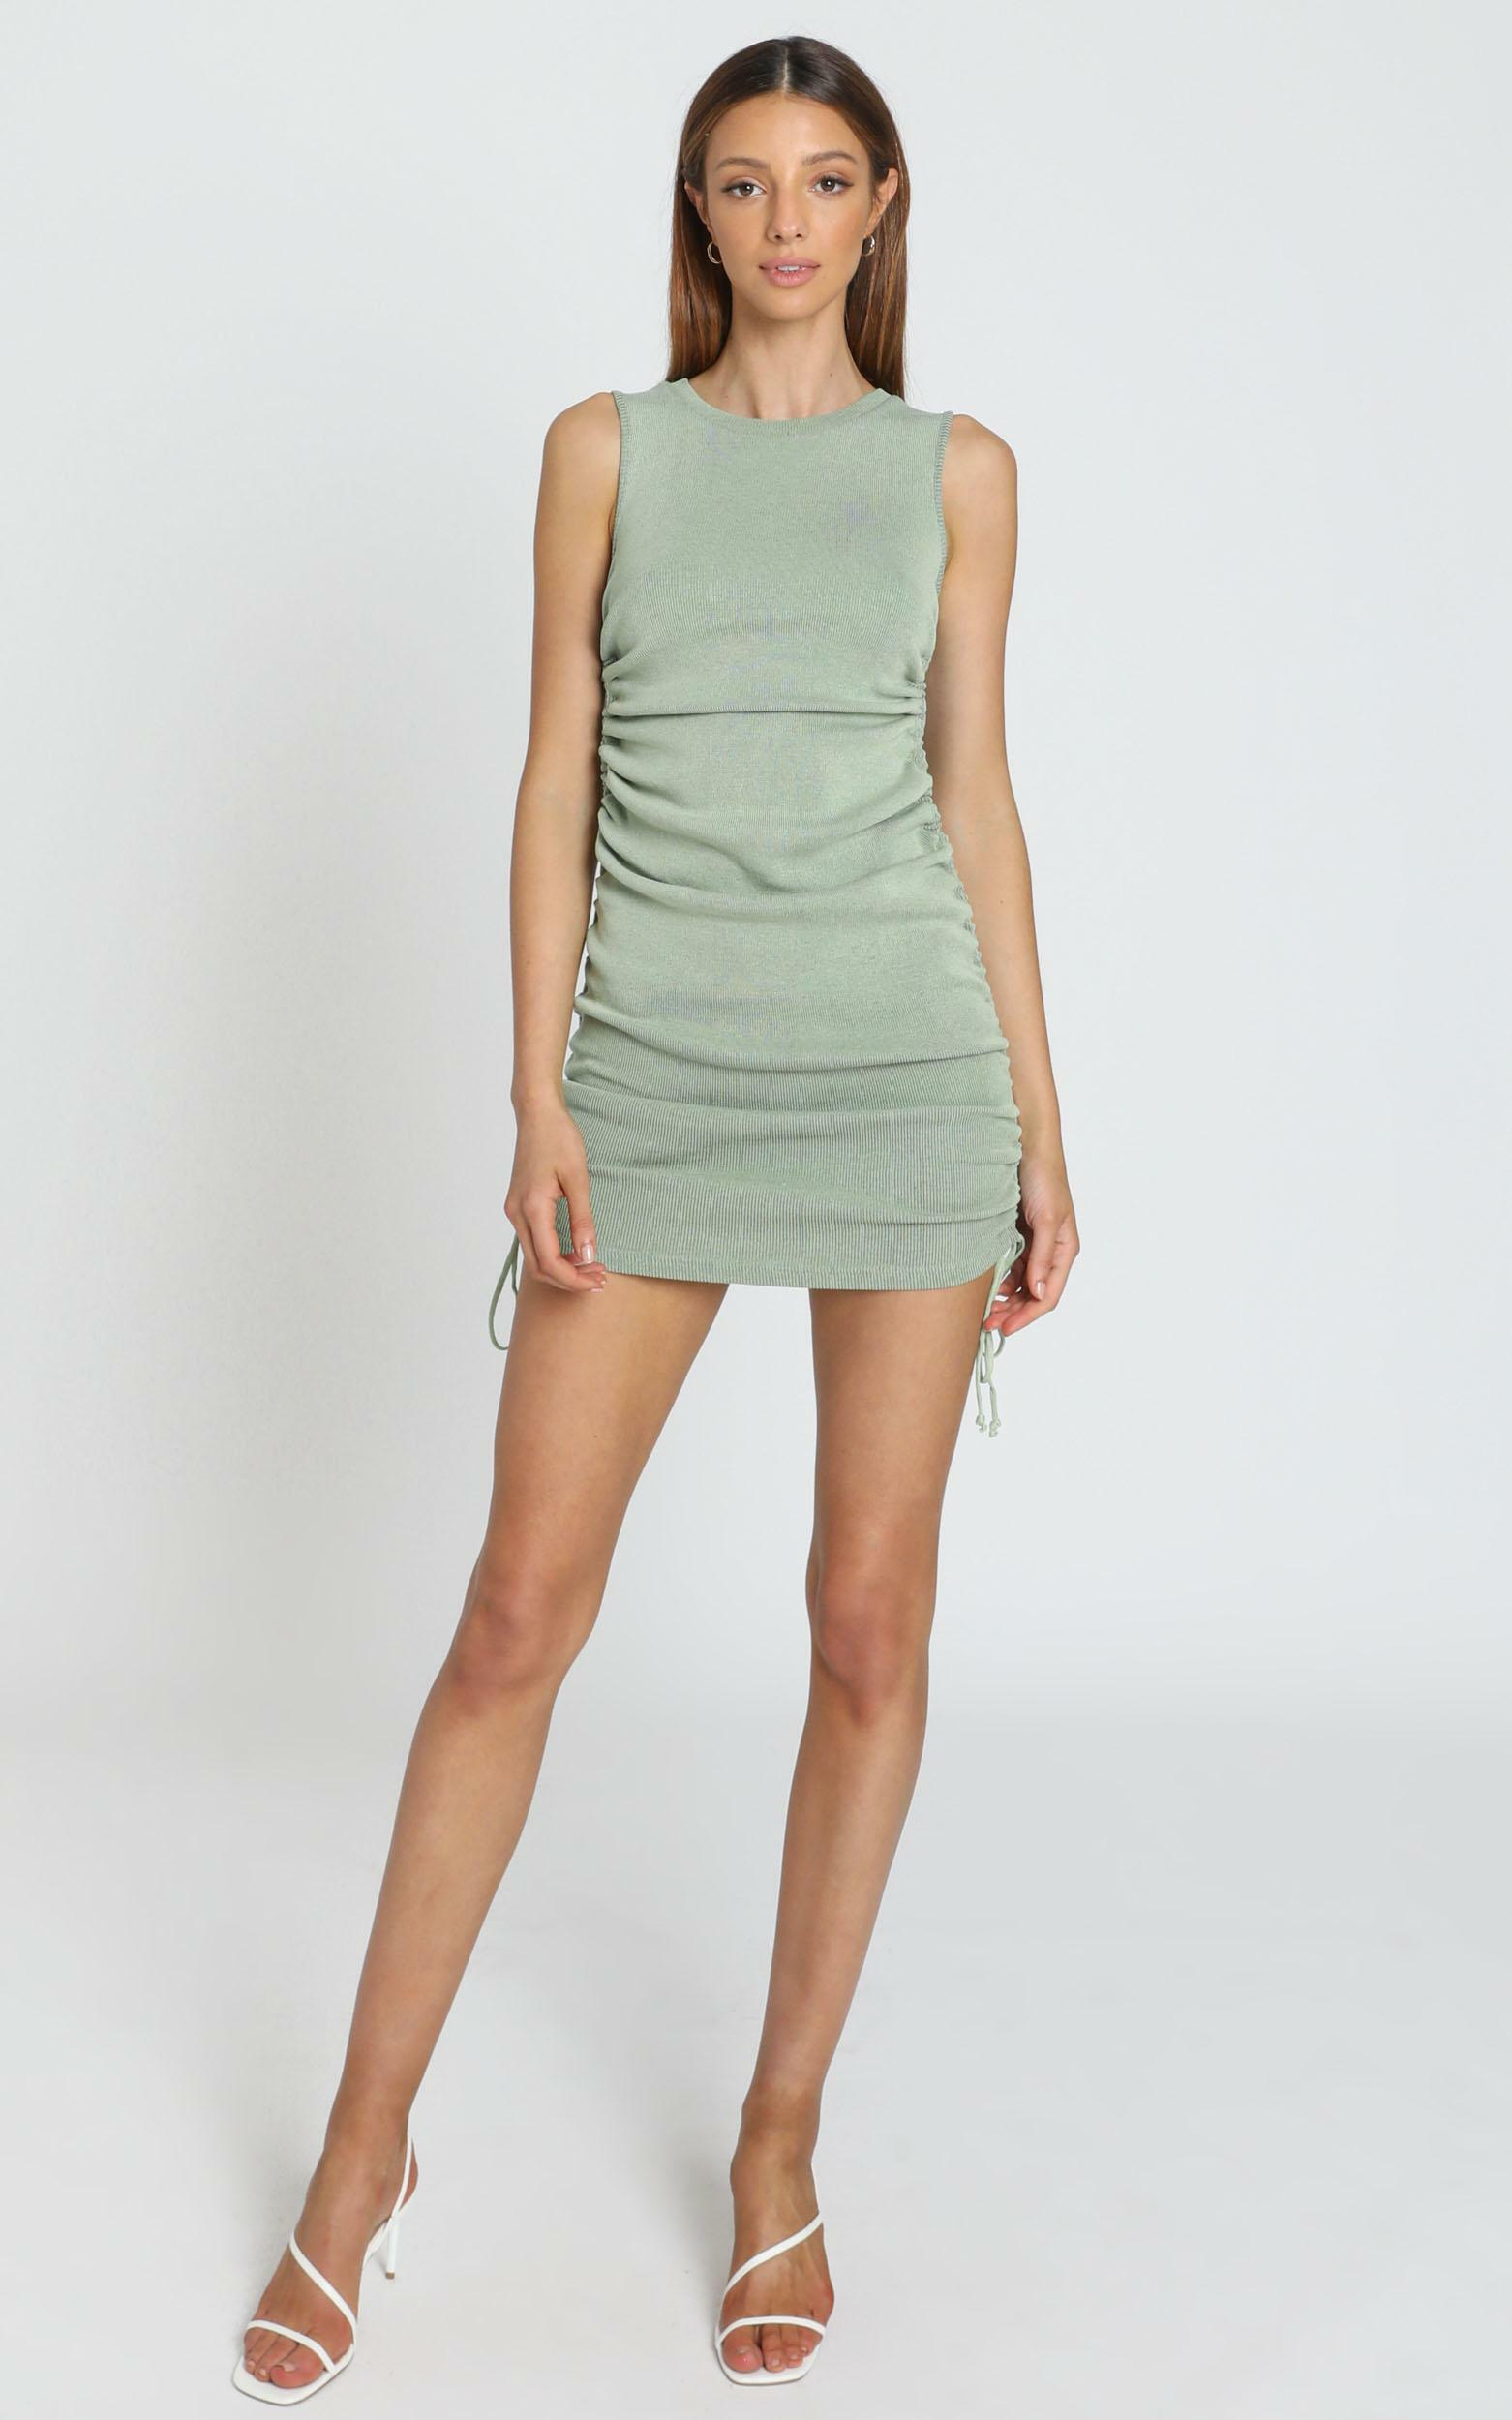 Lioness - Military Minds dress in pistachio - 6 (XS), Green, hi-res image number null